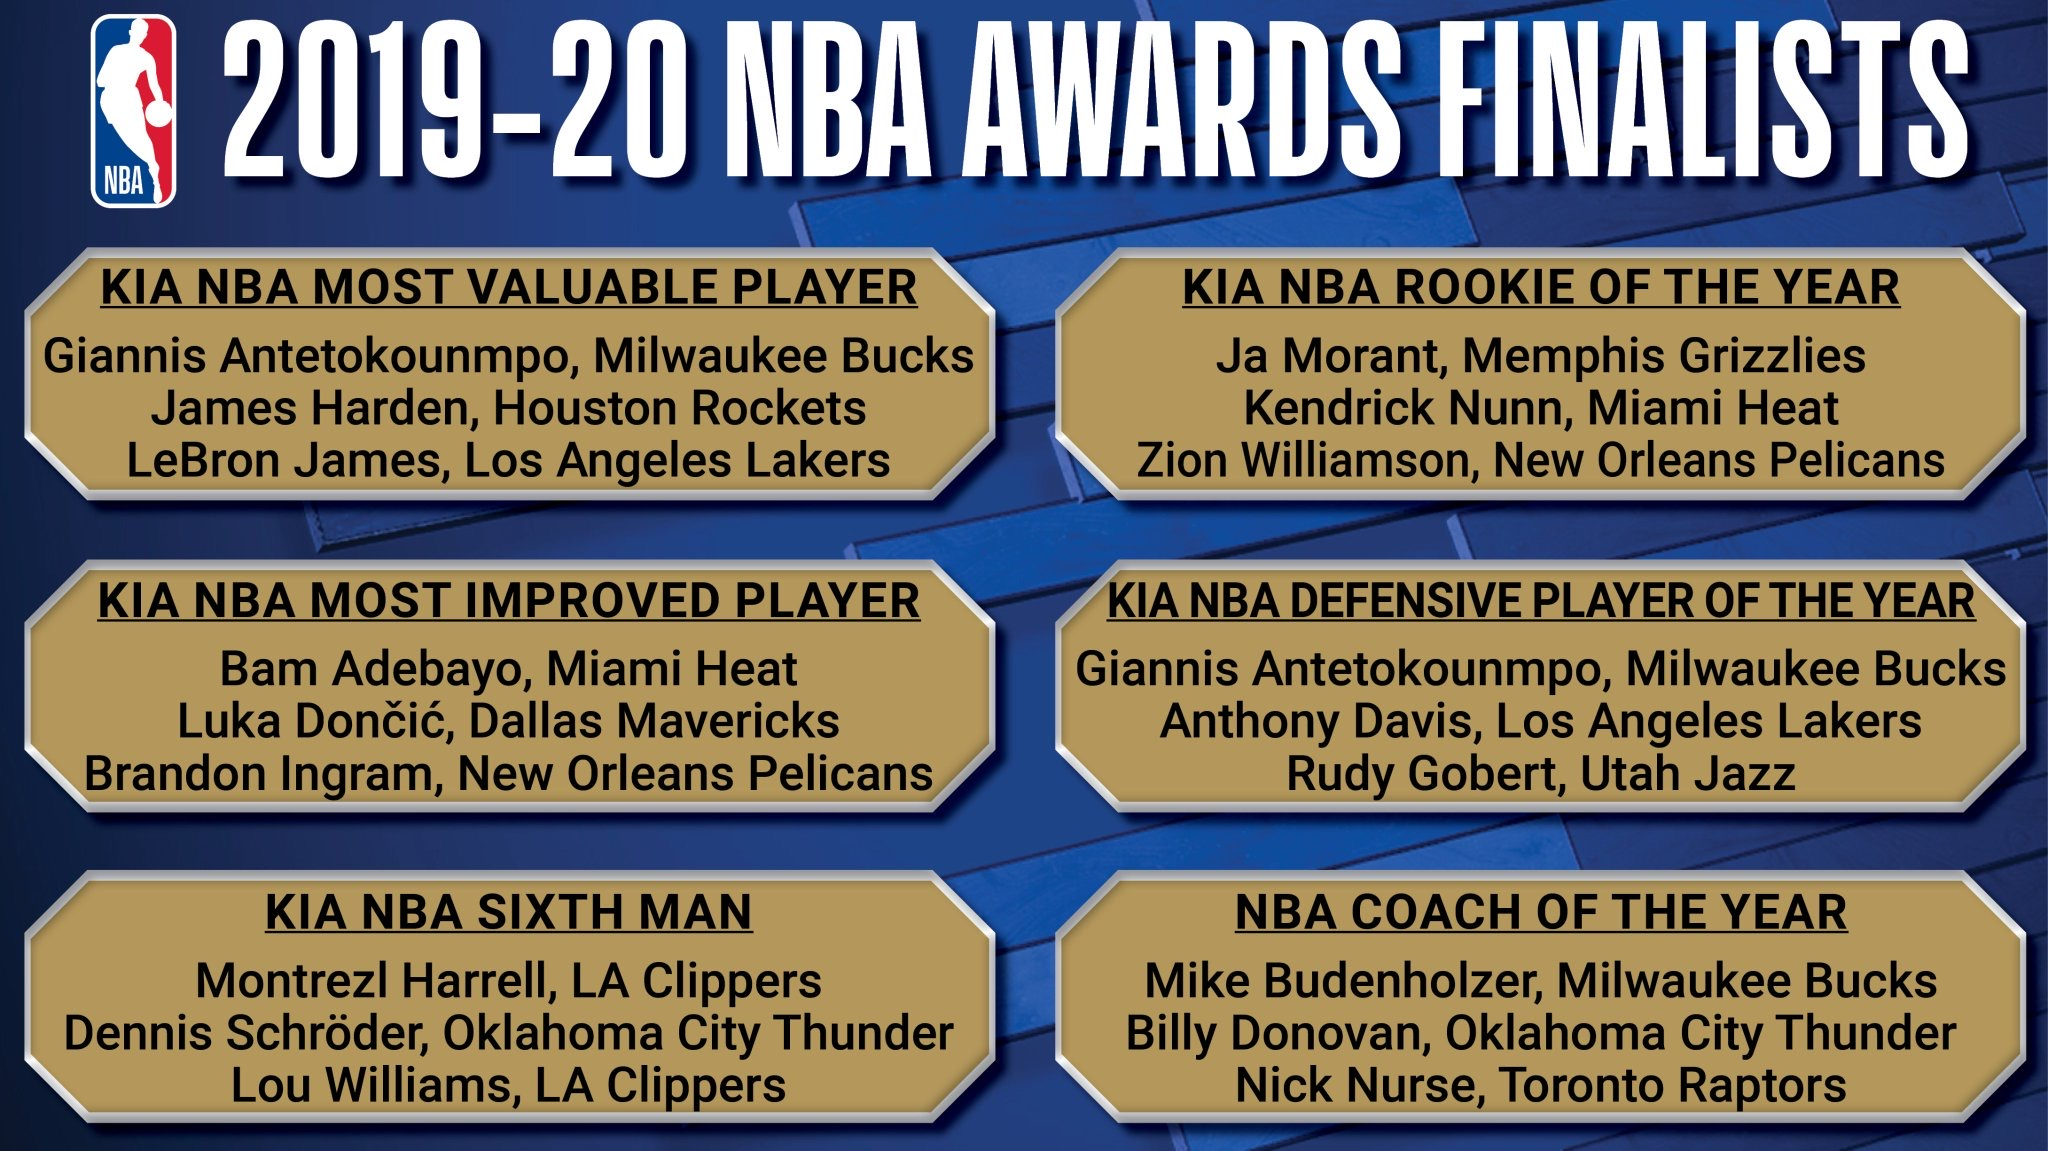 Mavs' Luka Doncic Finalist For NBA's Most Improved Player